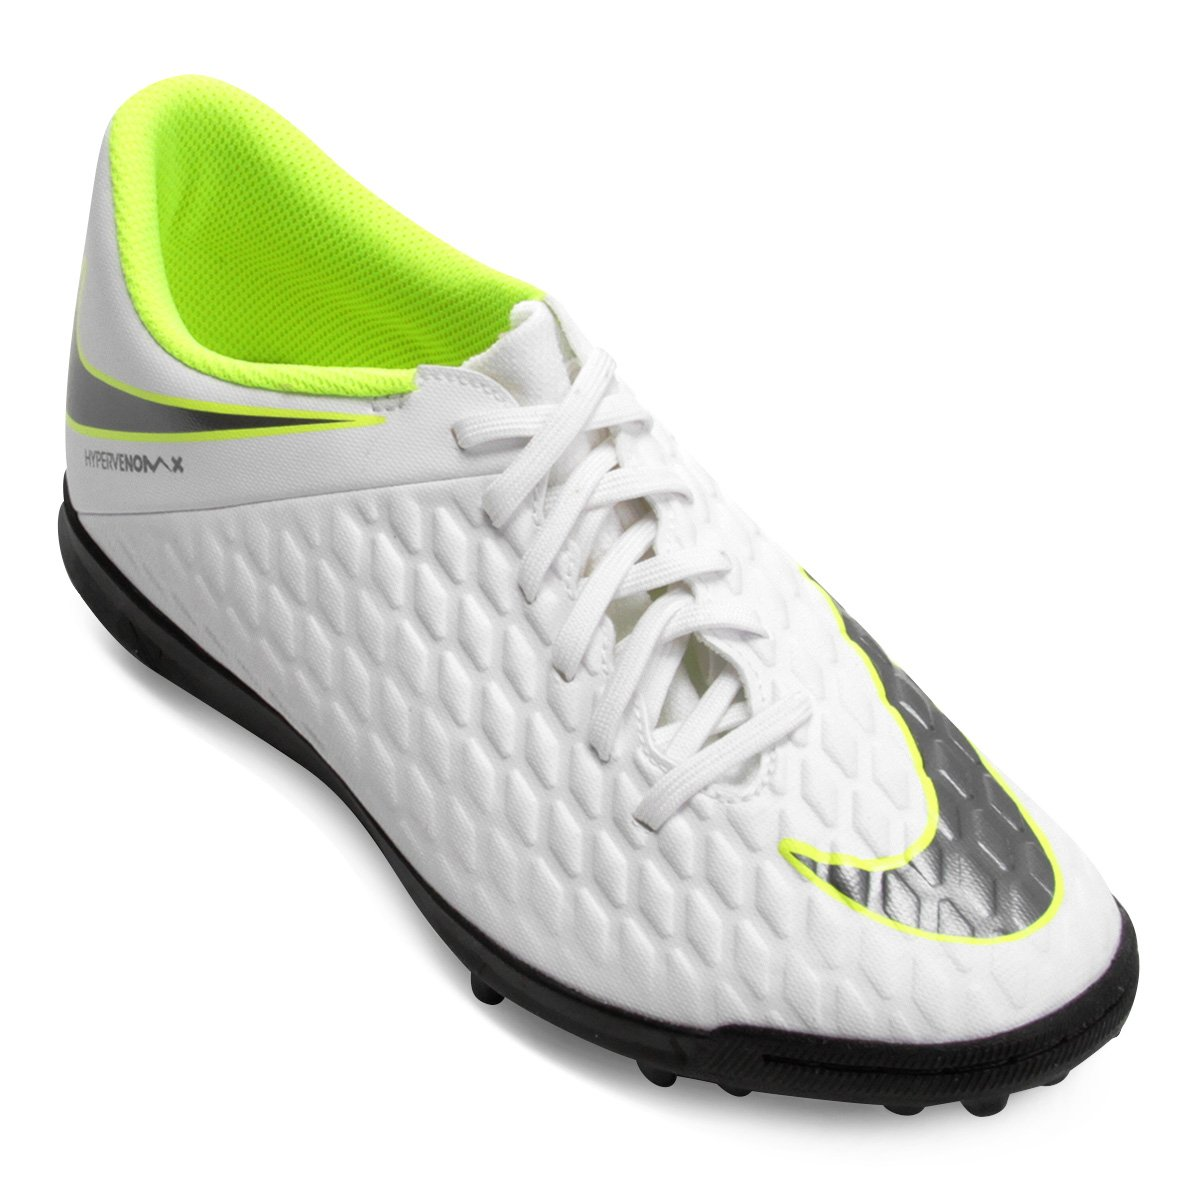 Chuteira Society Nike Hypervenom Phantom 3 Club TF - Branco e Cinza ... 0621cd86b935f